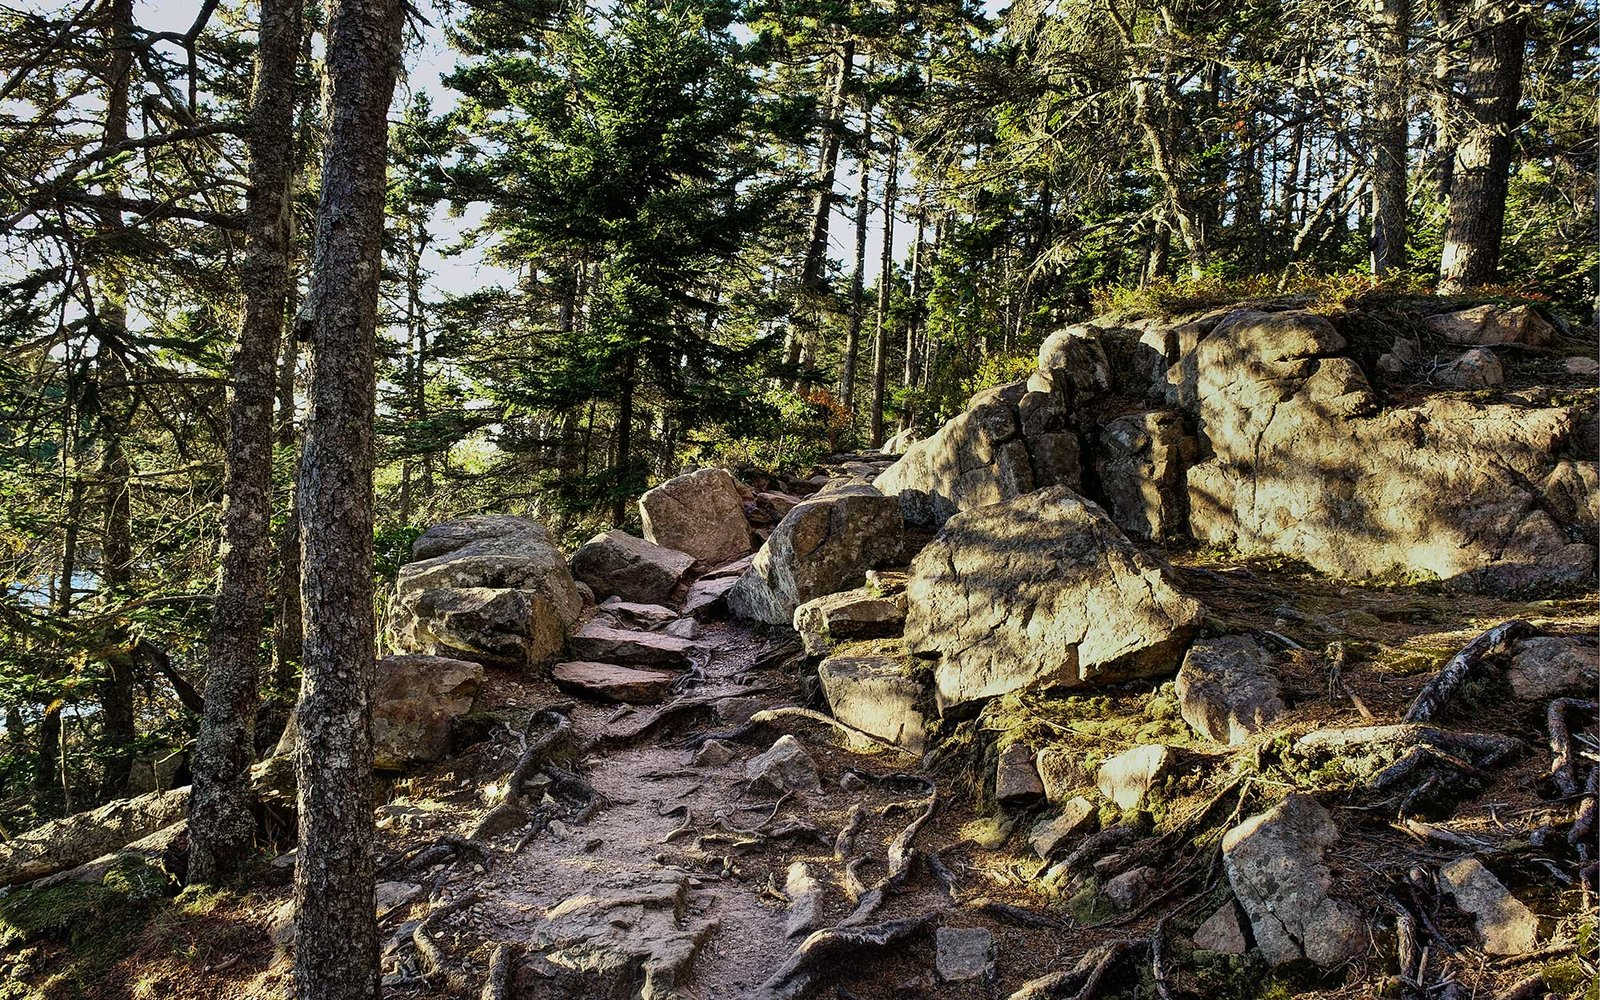 ACADIA NATIONAL PARK, SOUTHWEST HARBOR, MAINE, UNITED STATES - 2010/10/12: Hiking path through the woods, Acadia National Park. (Photo by John Greim/LightRocket via Getty Images)